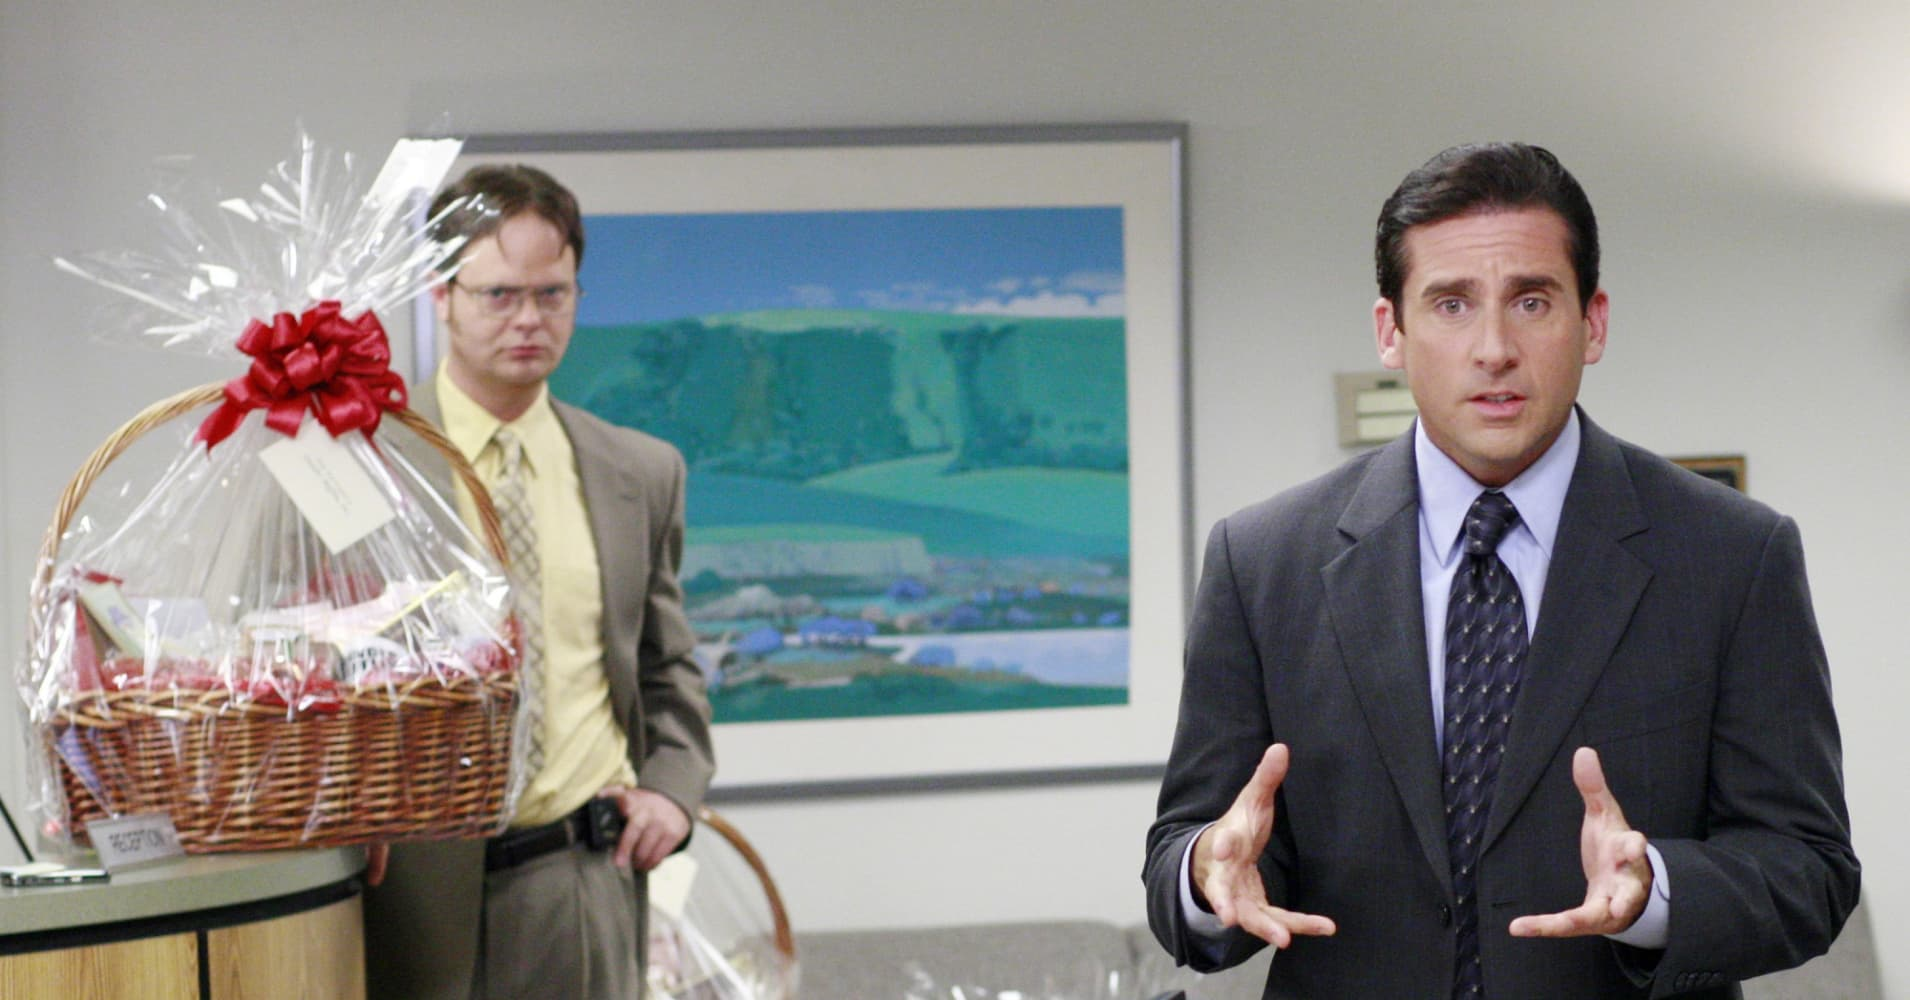 Rainn Wilson as Dwight Schrute and Steve Carell as Michael Scott on The Office.